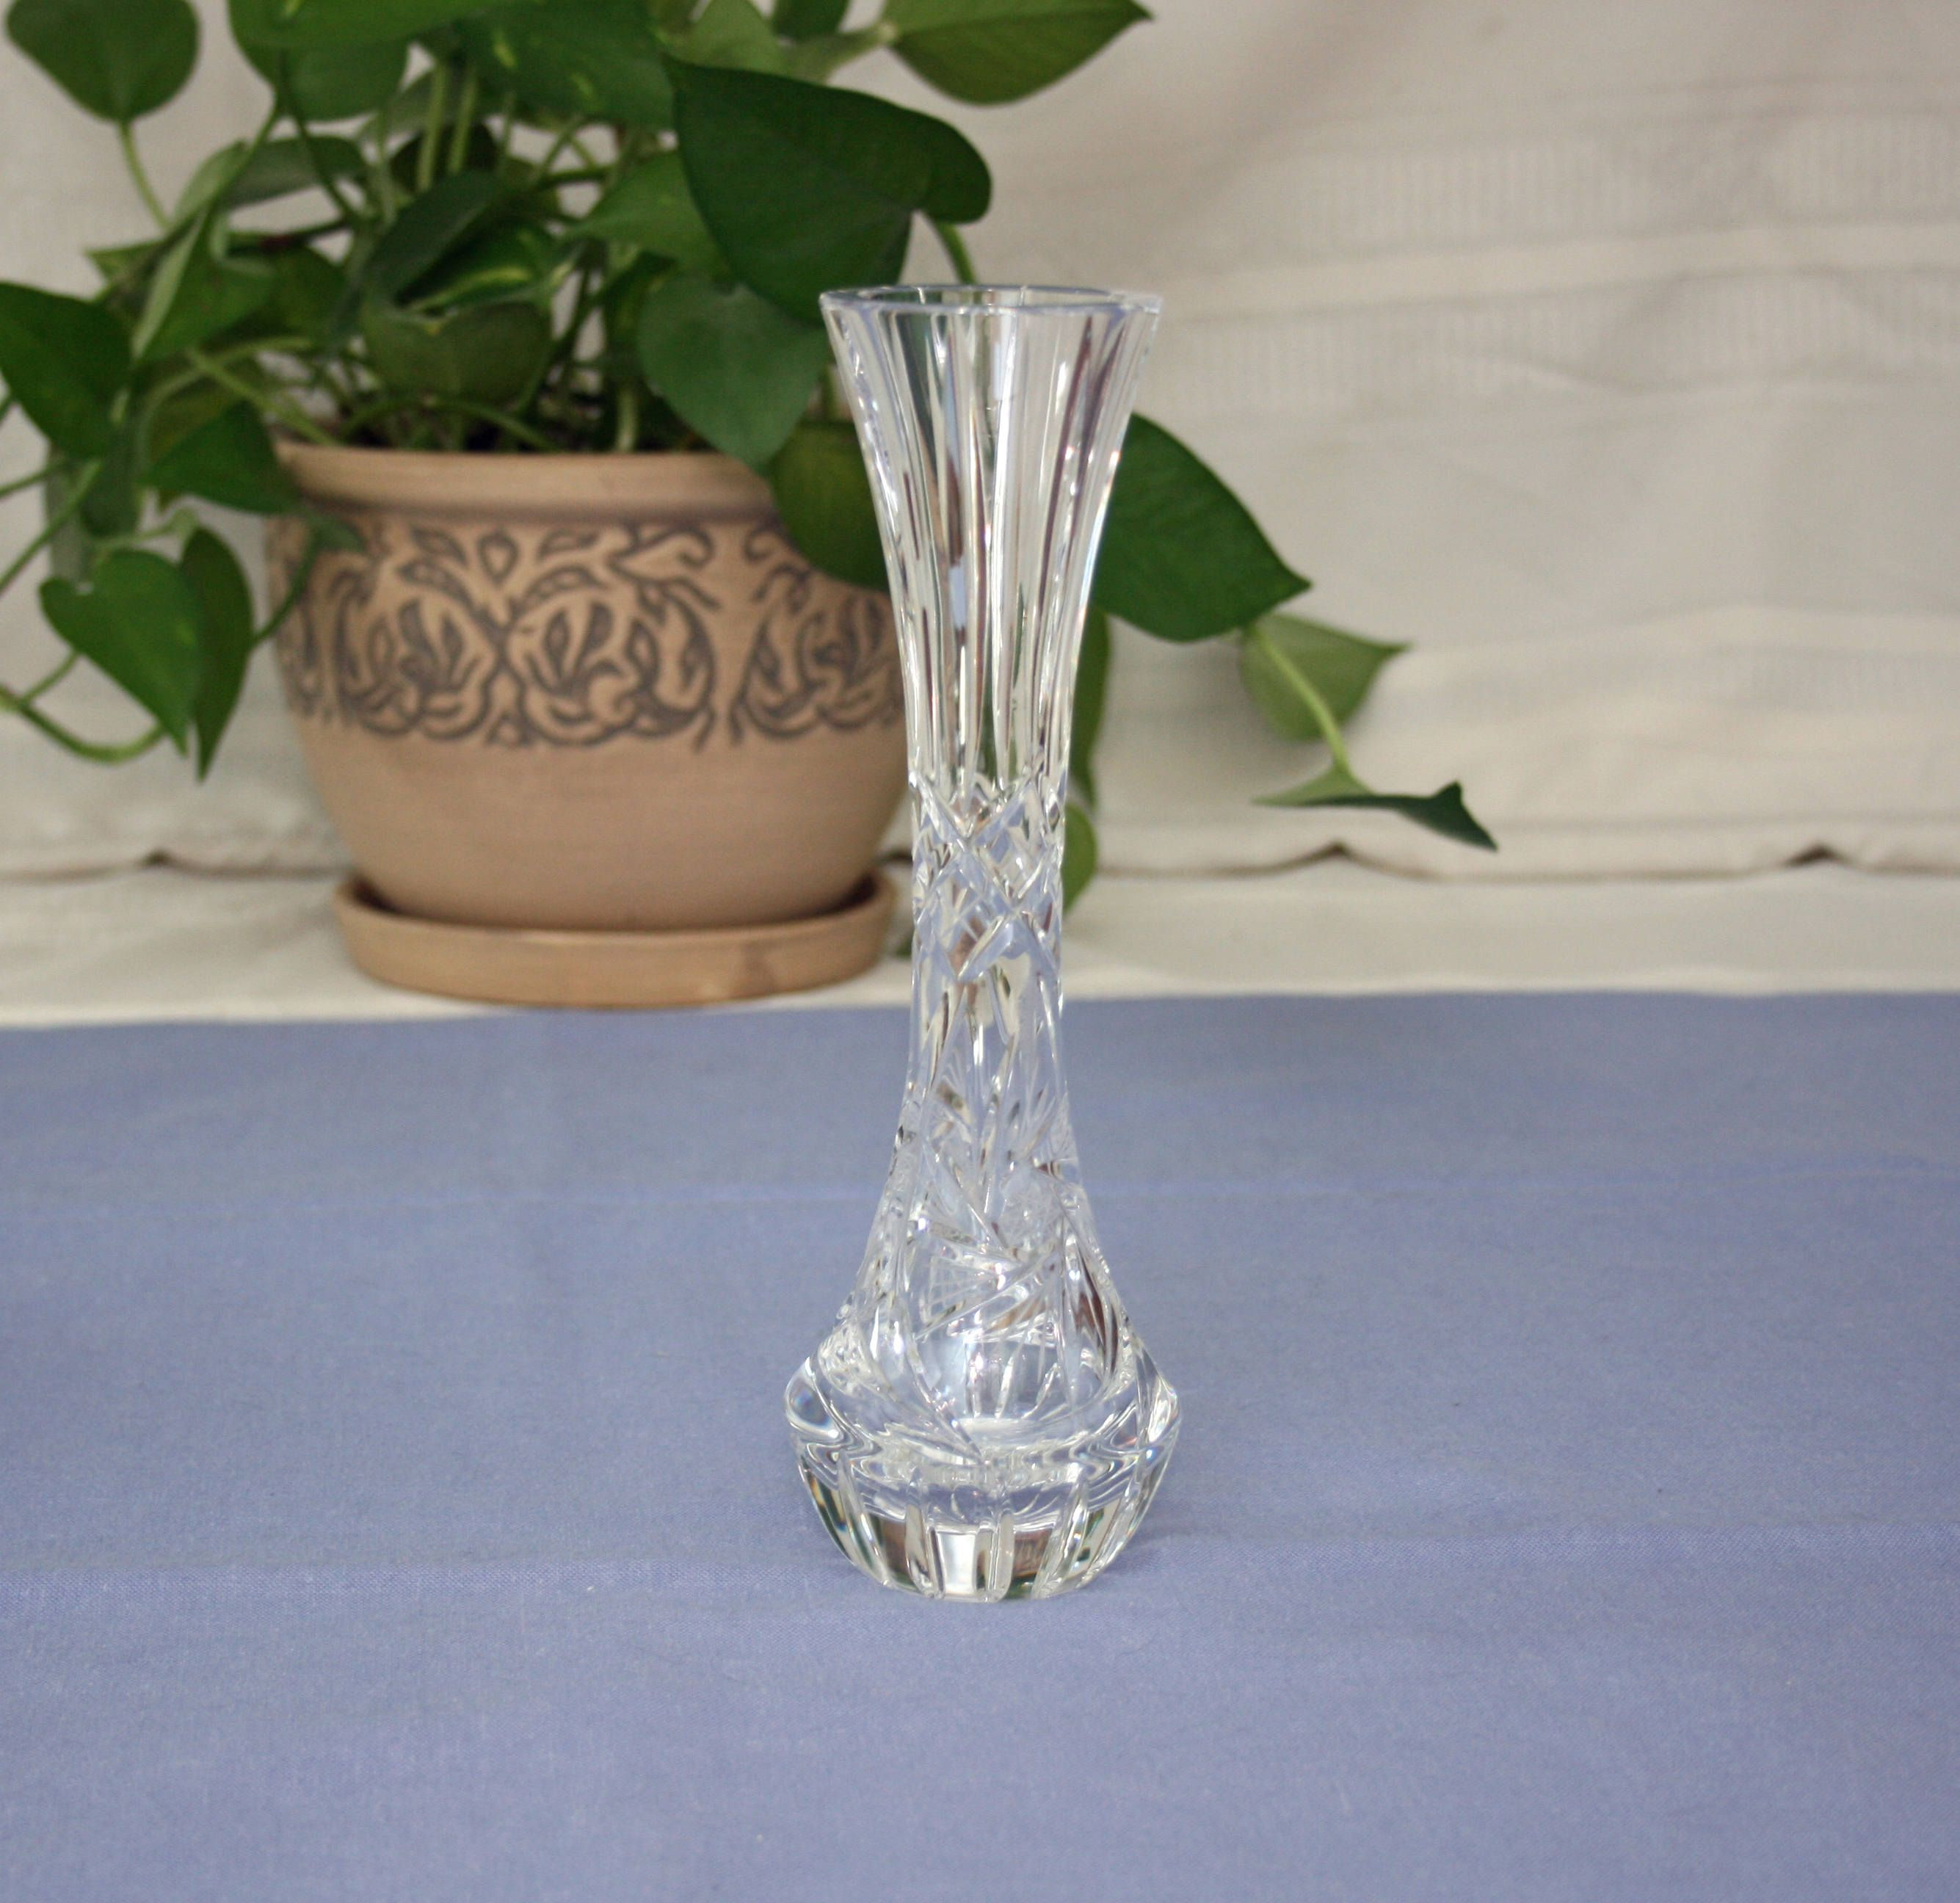 lenox crystal vase patterns of vintage pair 6 inch pressed glass candlesticks with hand c with regard to vintage lead crystal fluted bud vase hand cut swirled star pinwheel flower glass vase home decor